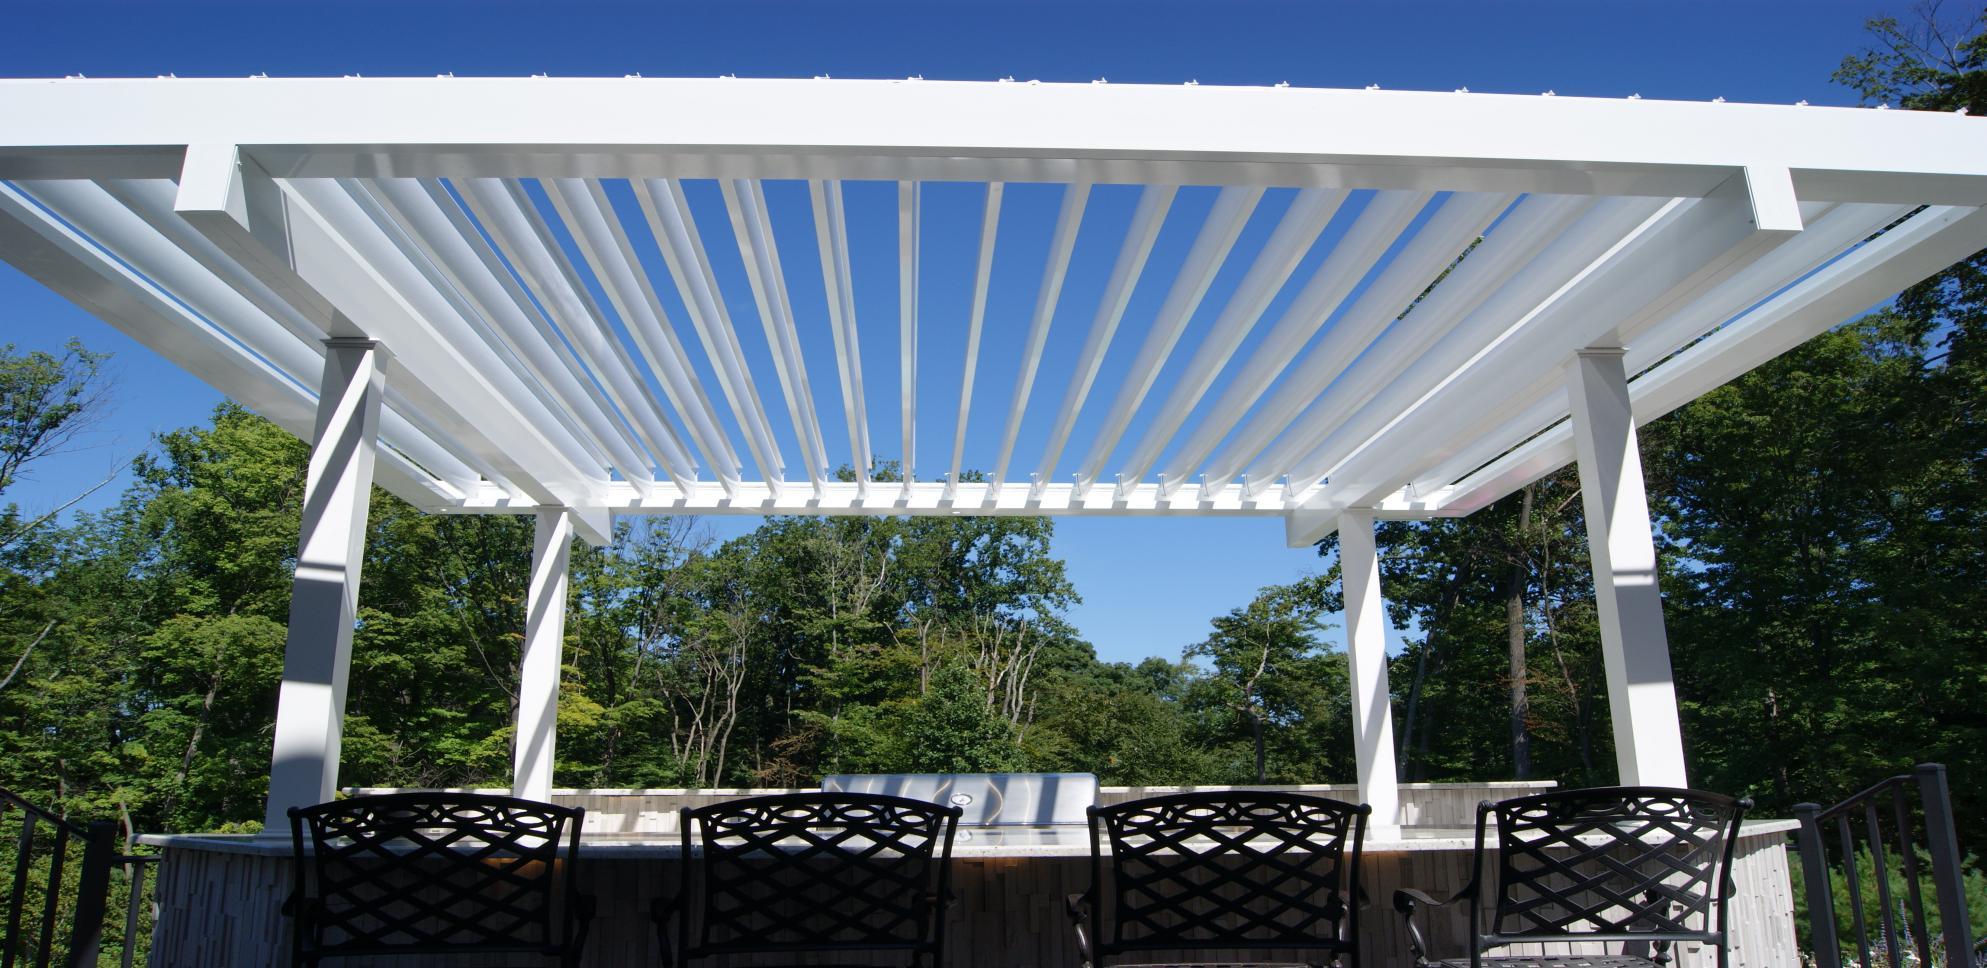 Louvered Roof System Designed To Transform Any Outdoor